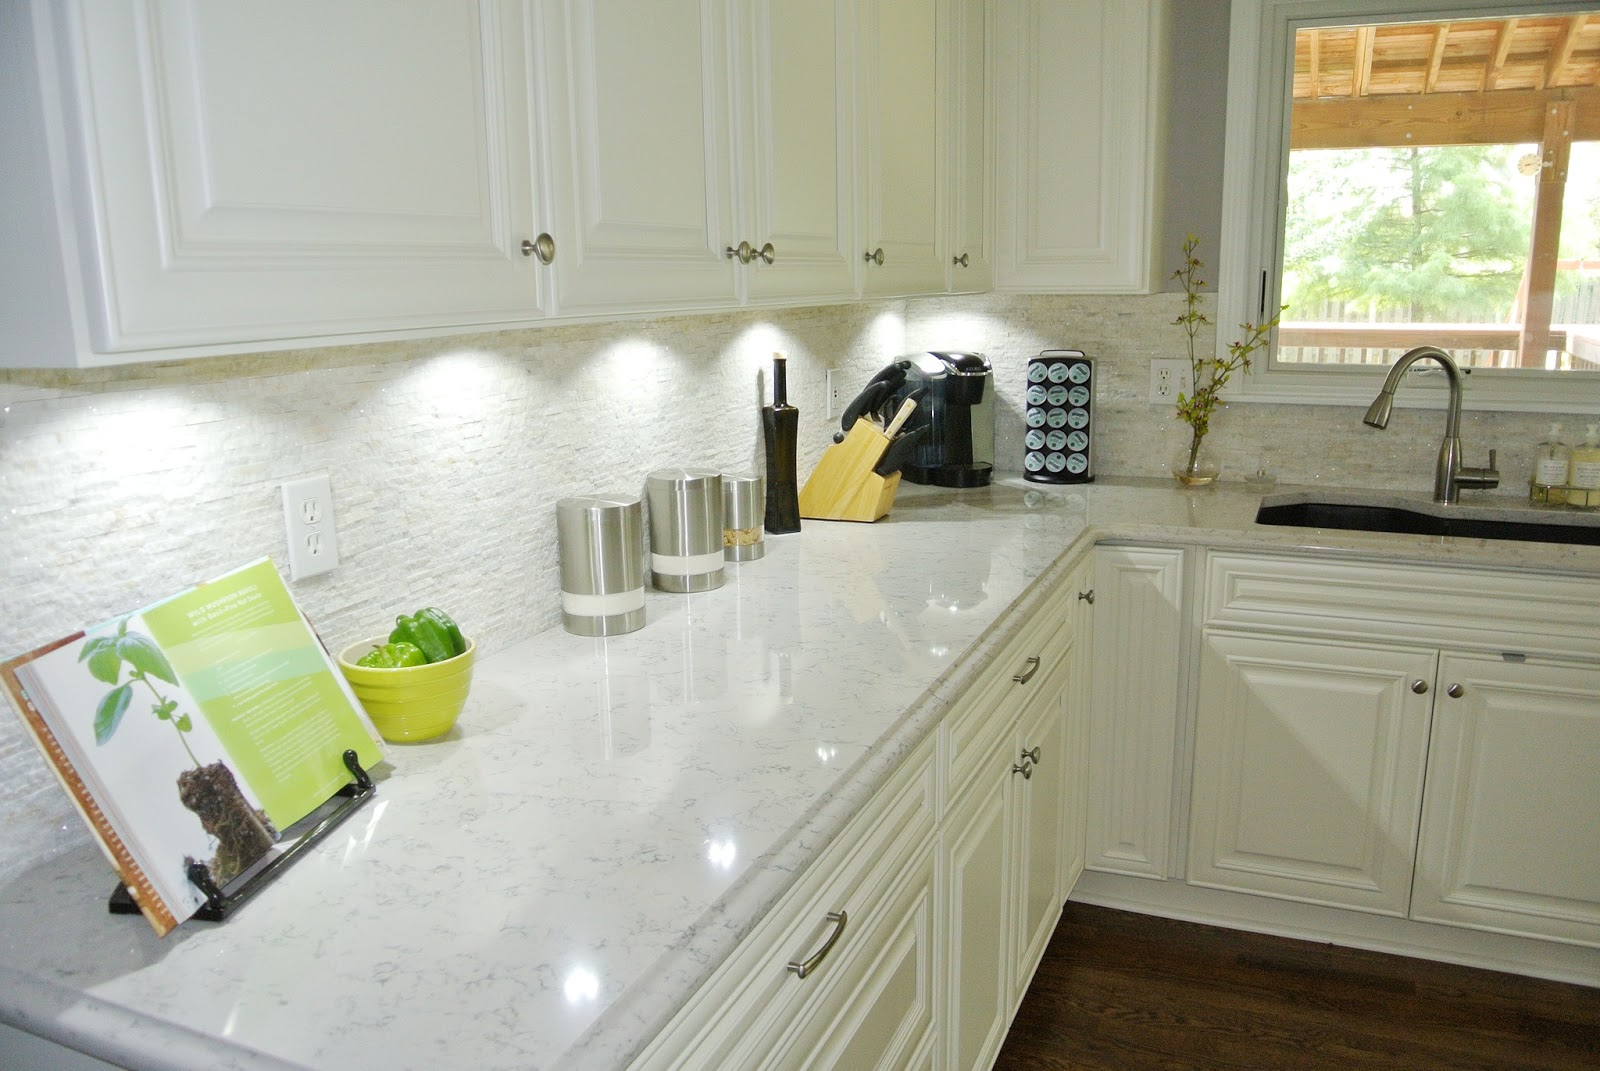 White Stone Backsplash Kitchen Lifejena  Kitchen Remodel